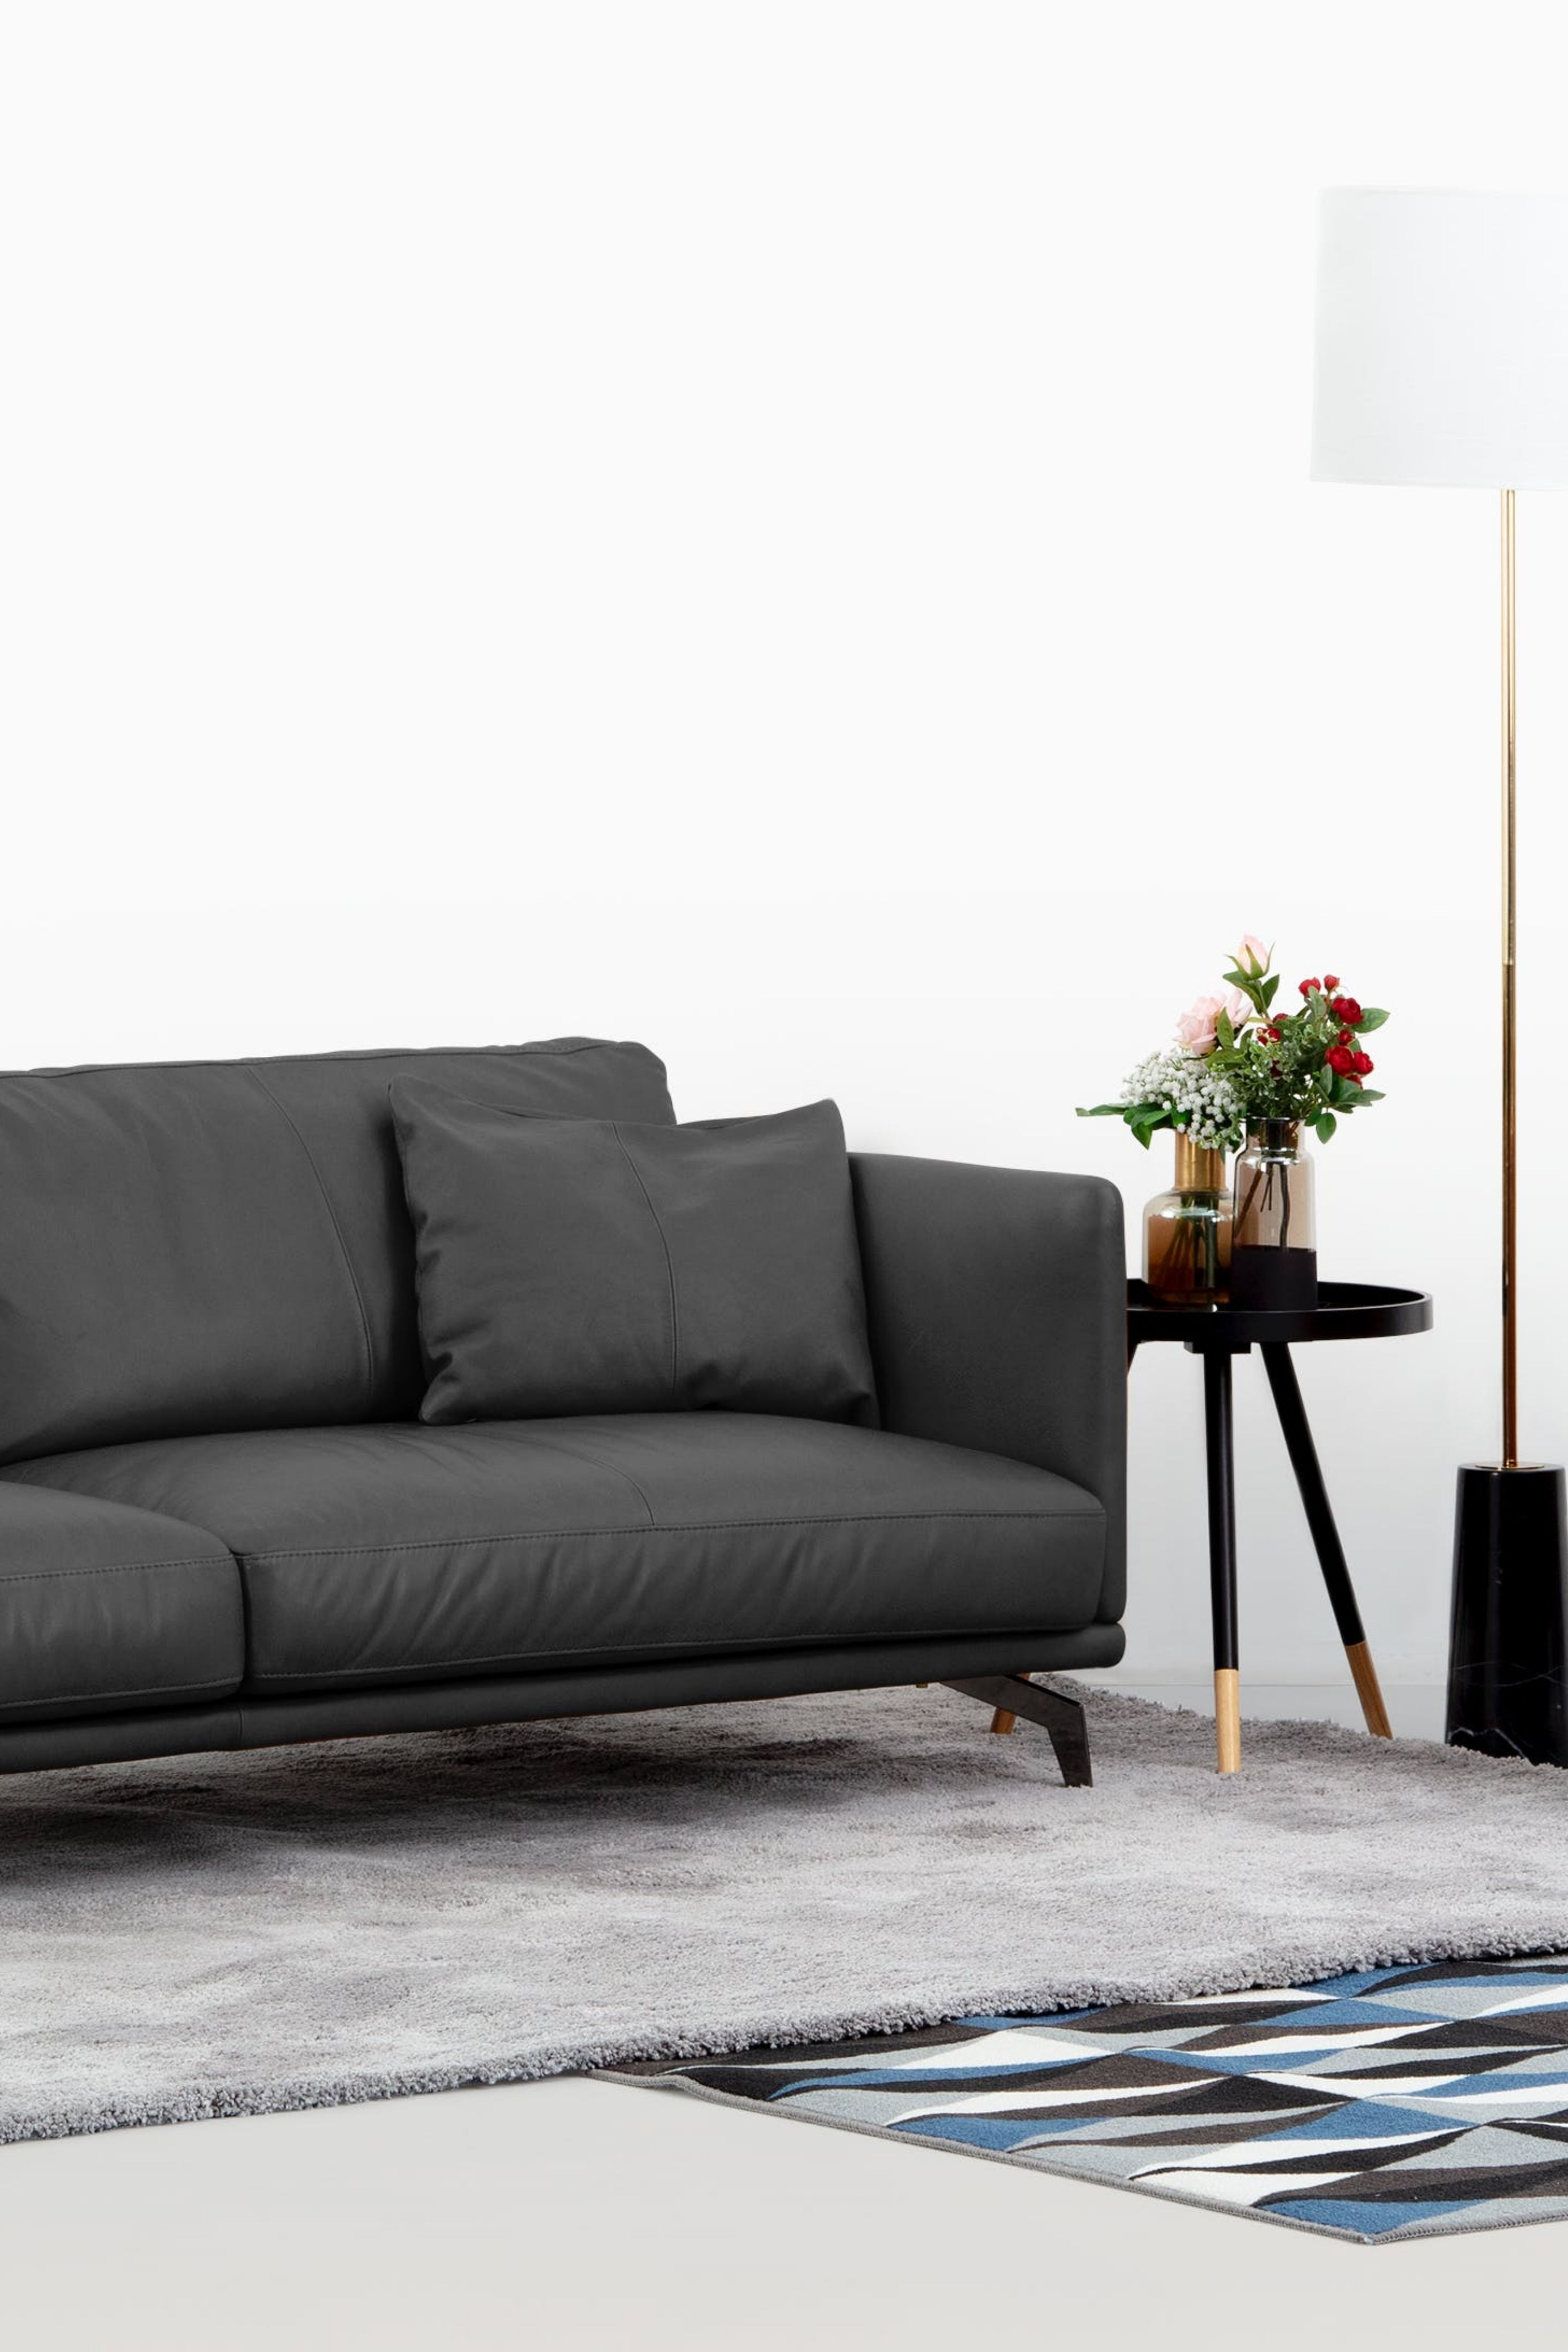 Our Premium Sofas Are Just What You